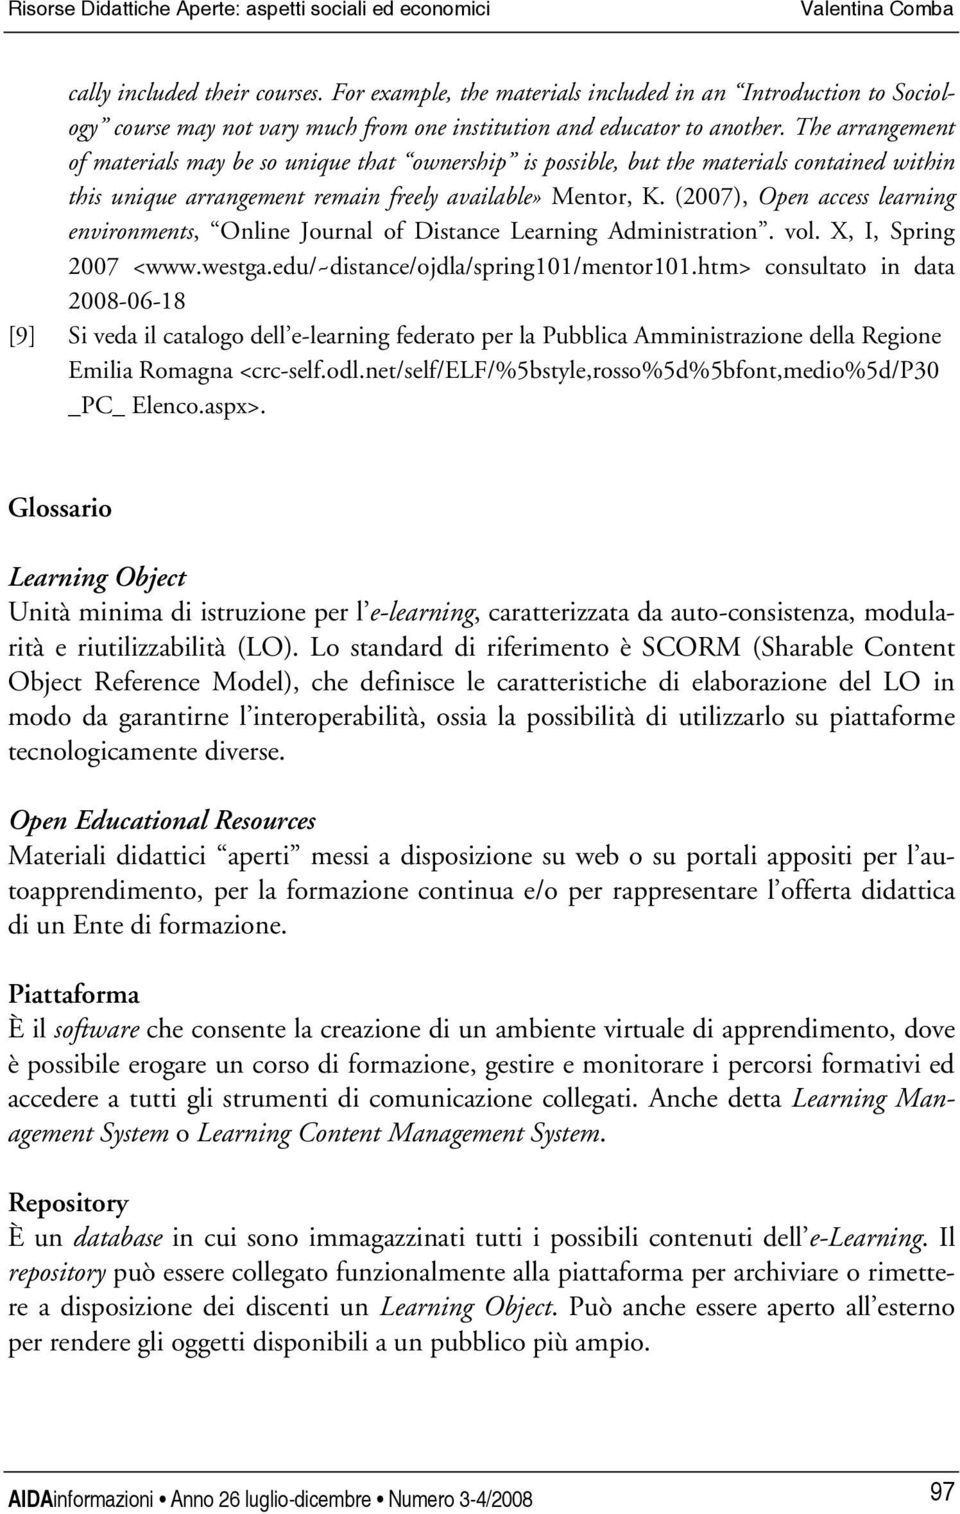 (2007), Open access learning environments, Online Journal of Distance Learning Administration. vol. X, I, Spring 2007 <www.westga.edu/~distance/ojdla/spring101/mentor101.